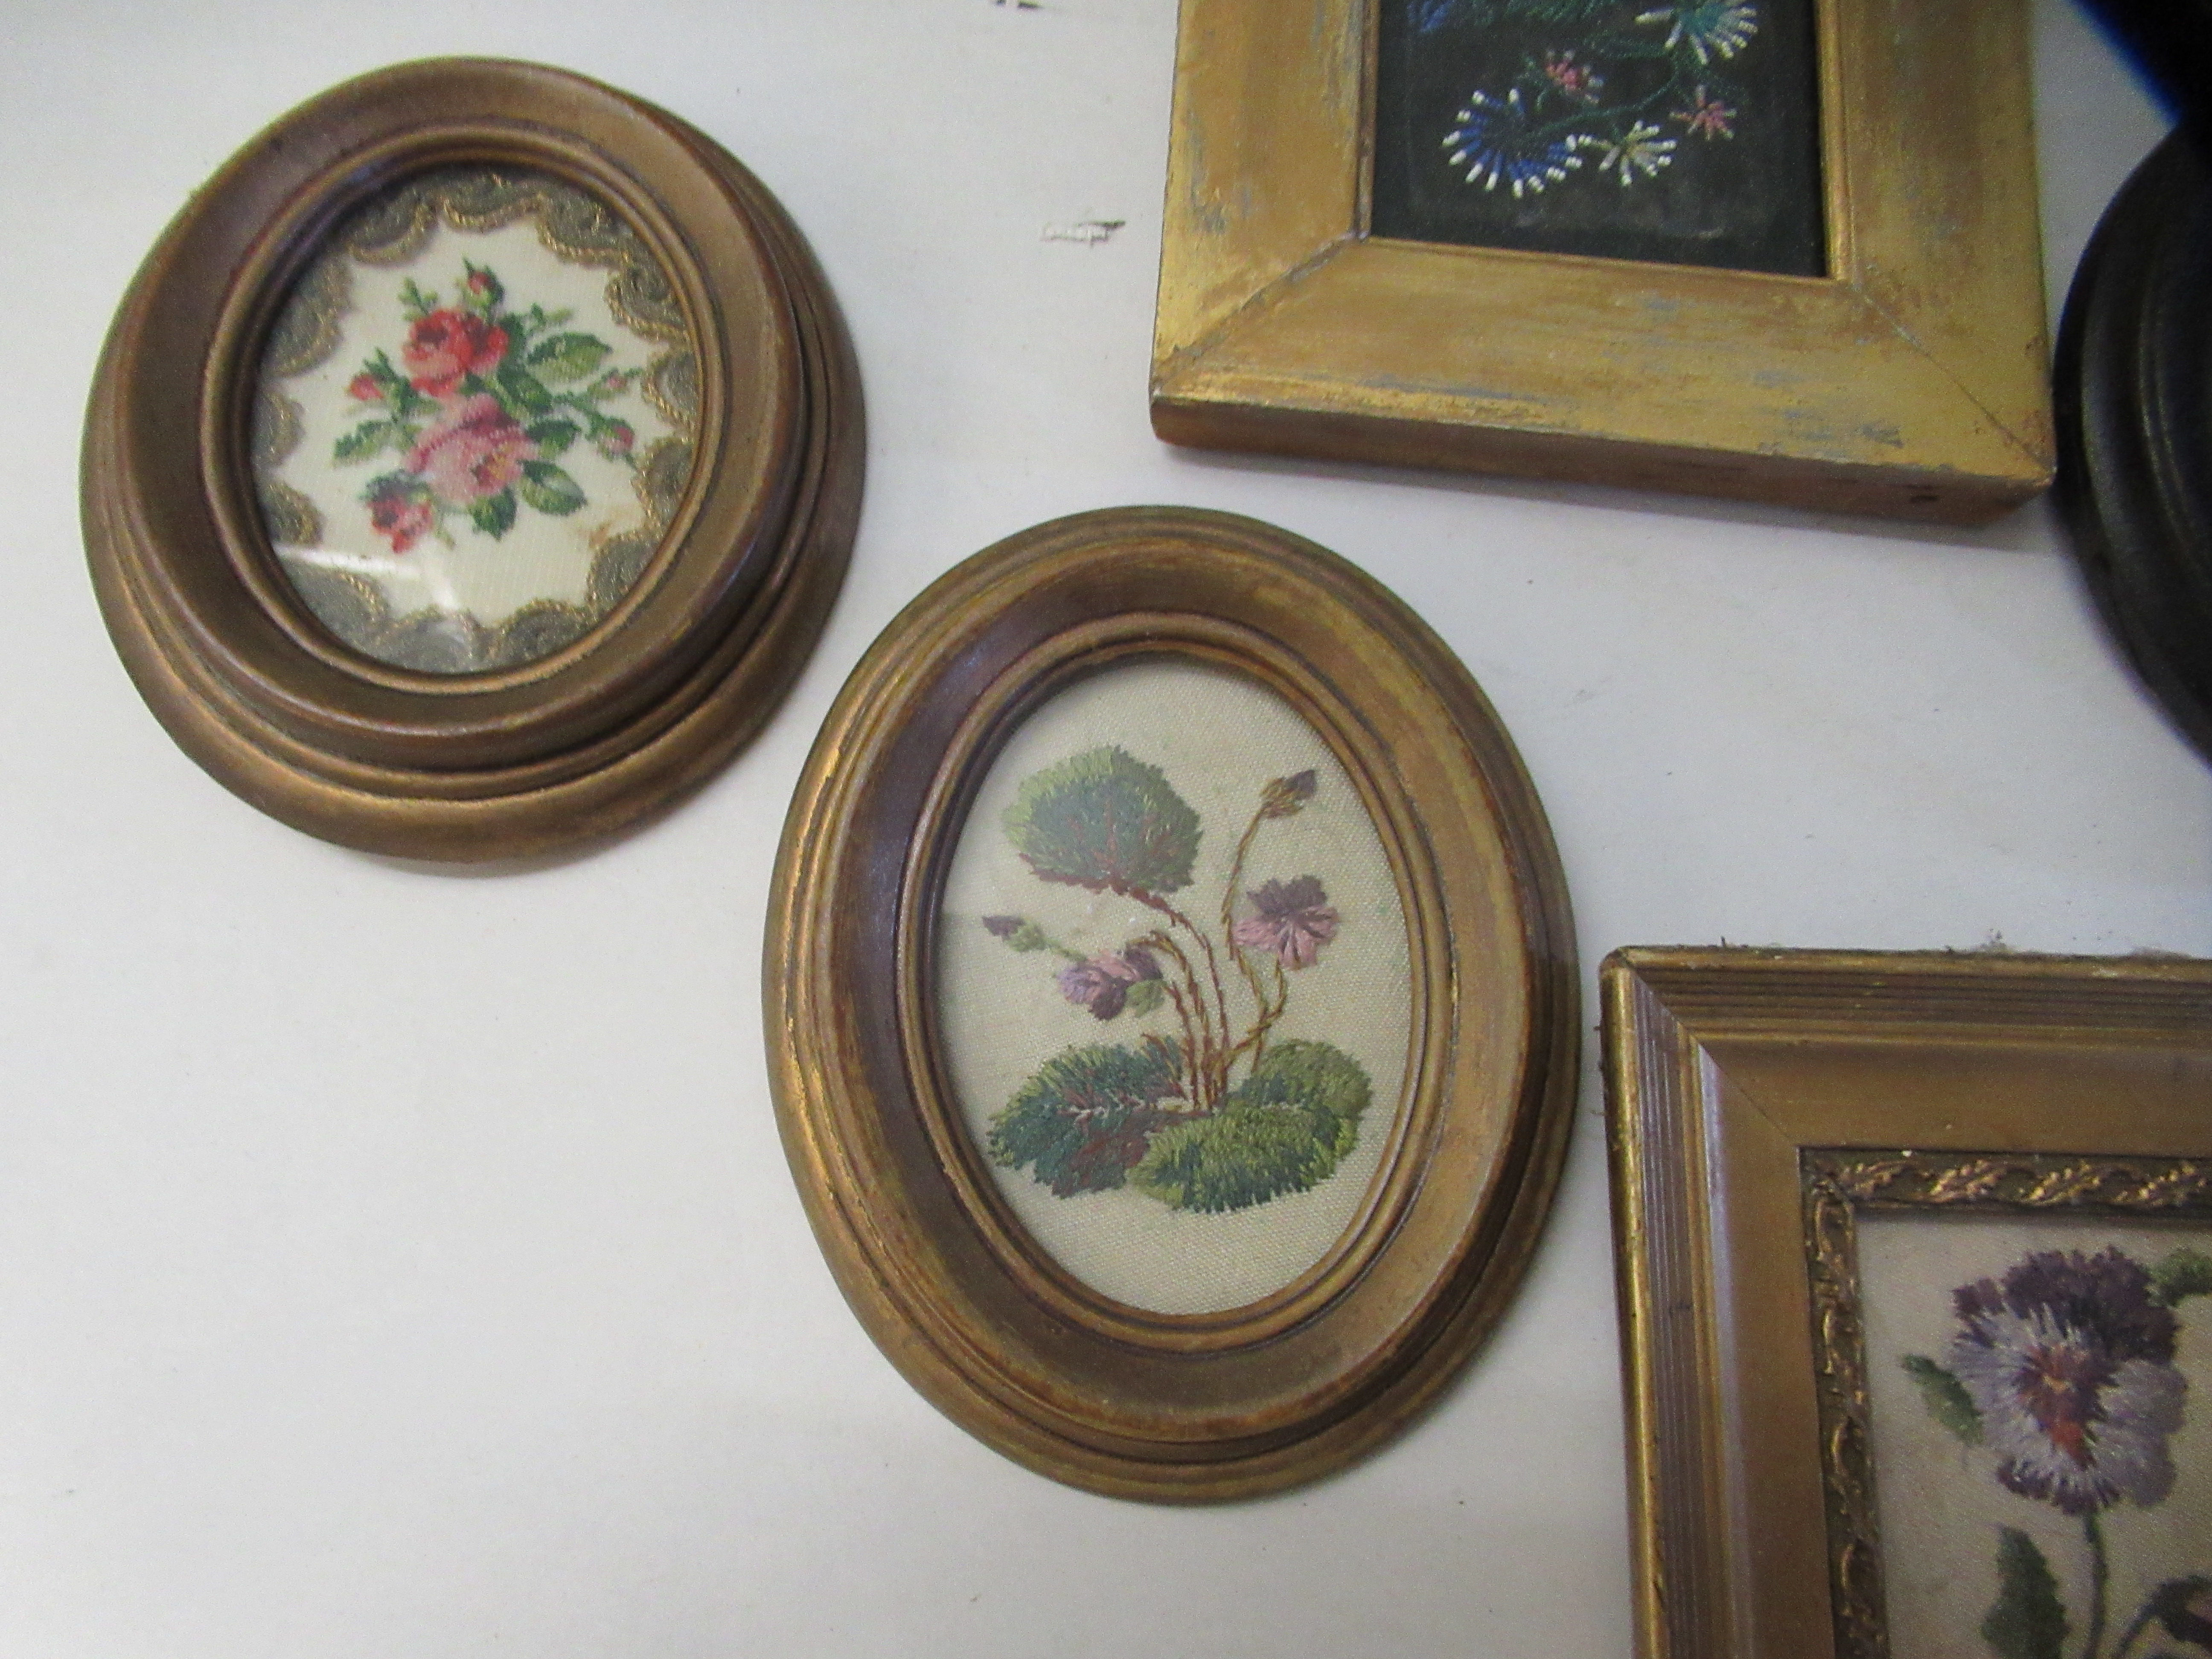 19th and 20thC embroidered tapestry panels various designs & sizes framed - Image 2 of 7